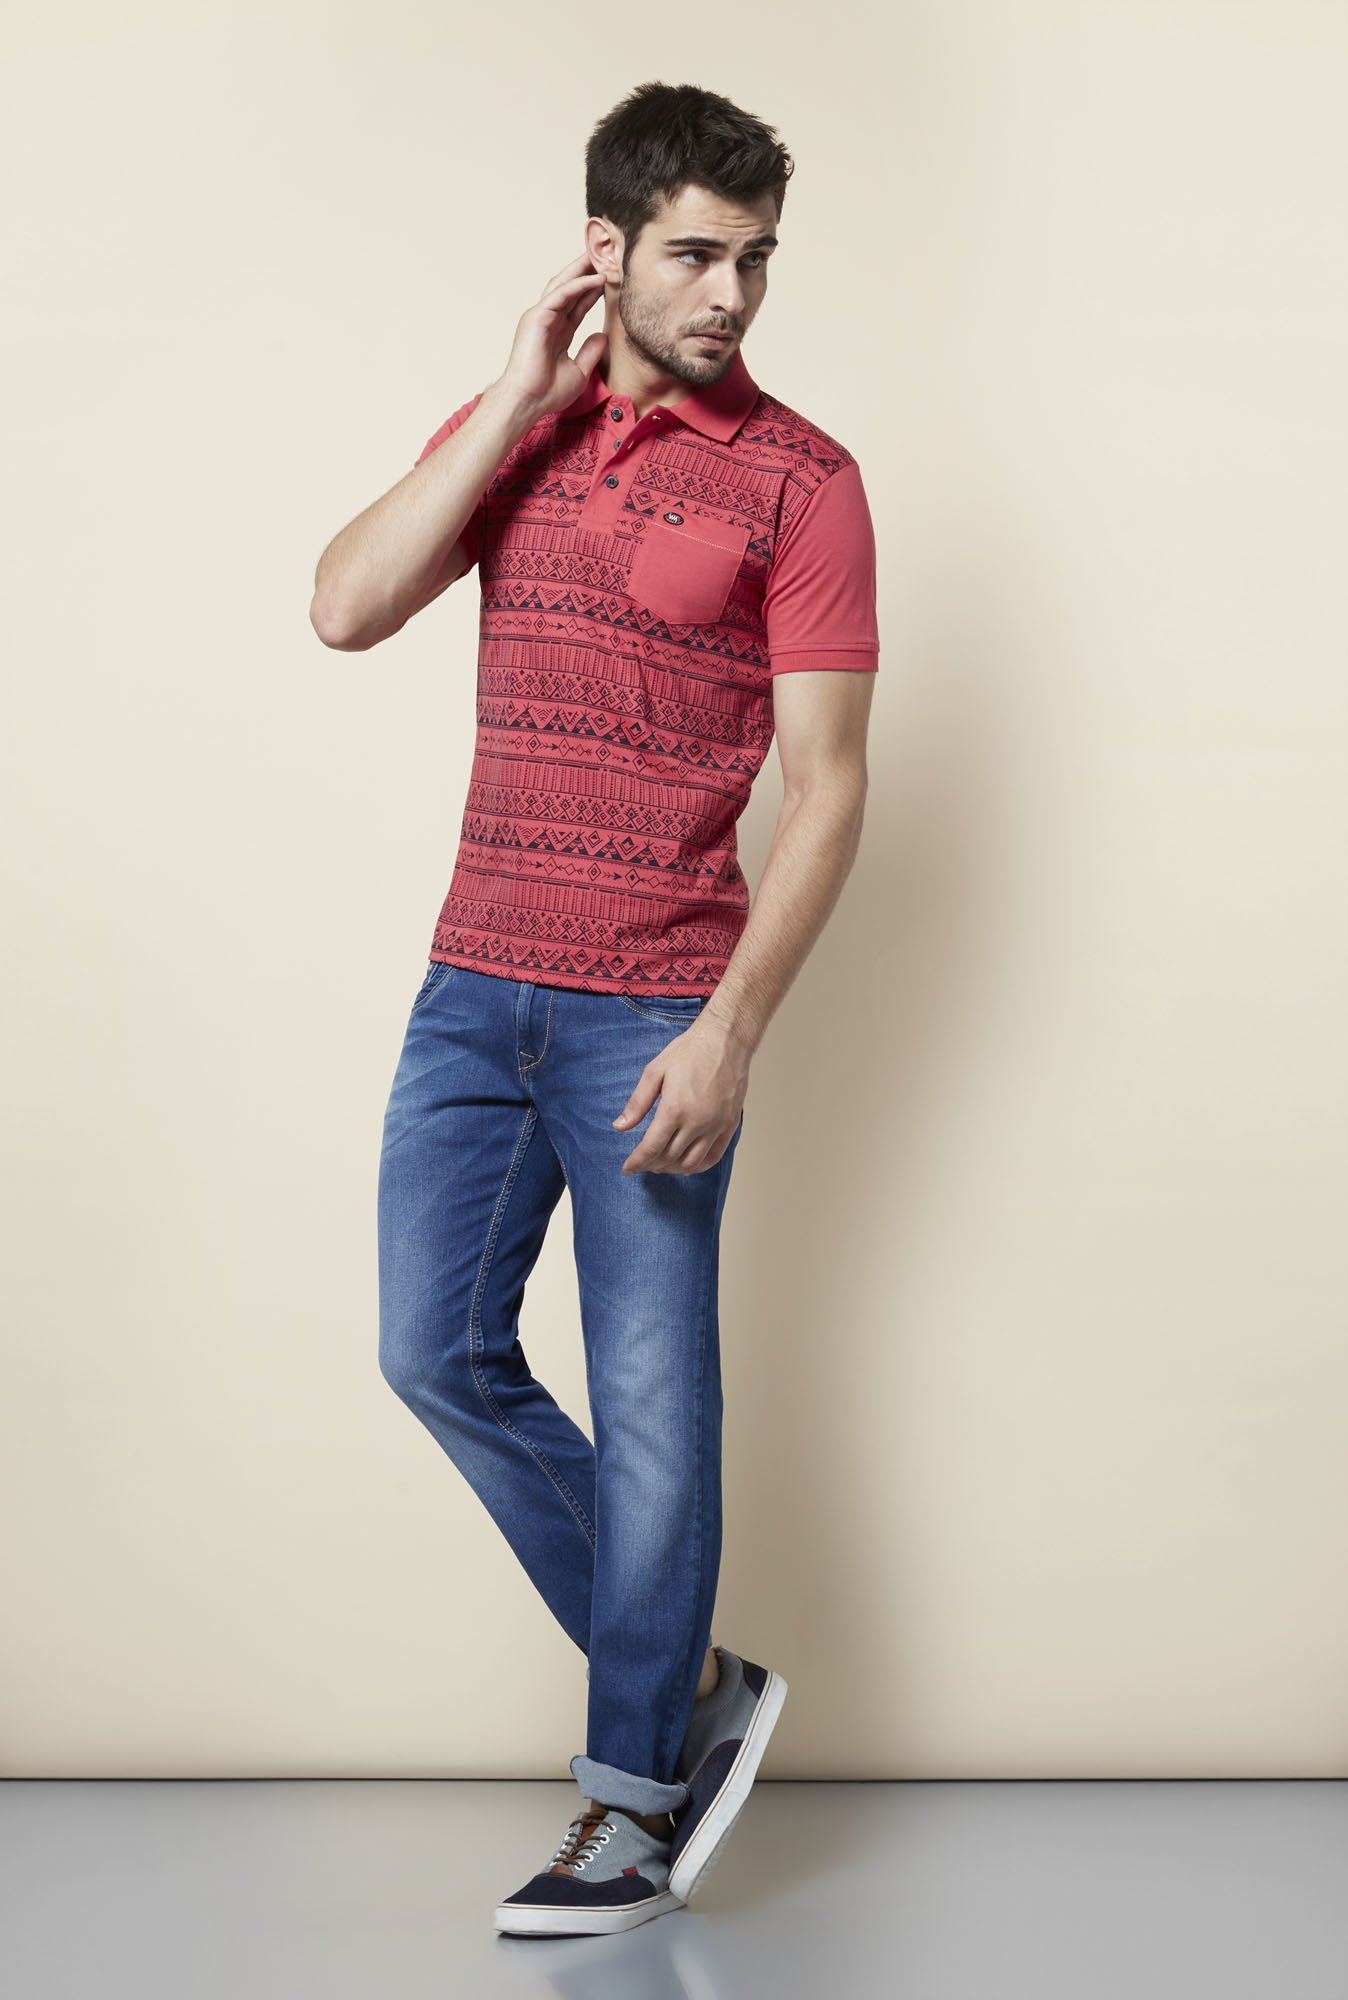 Lawman Coral Printed T shirt